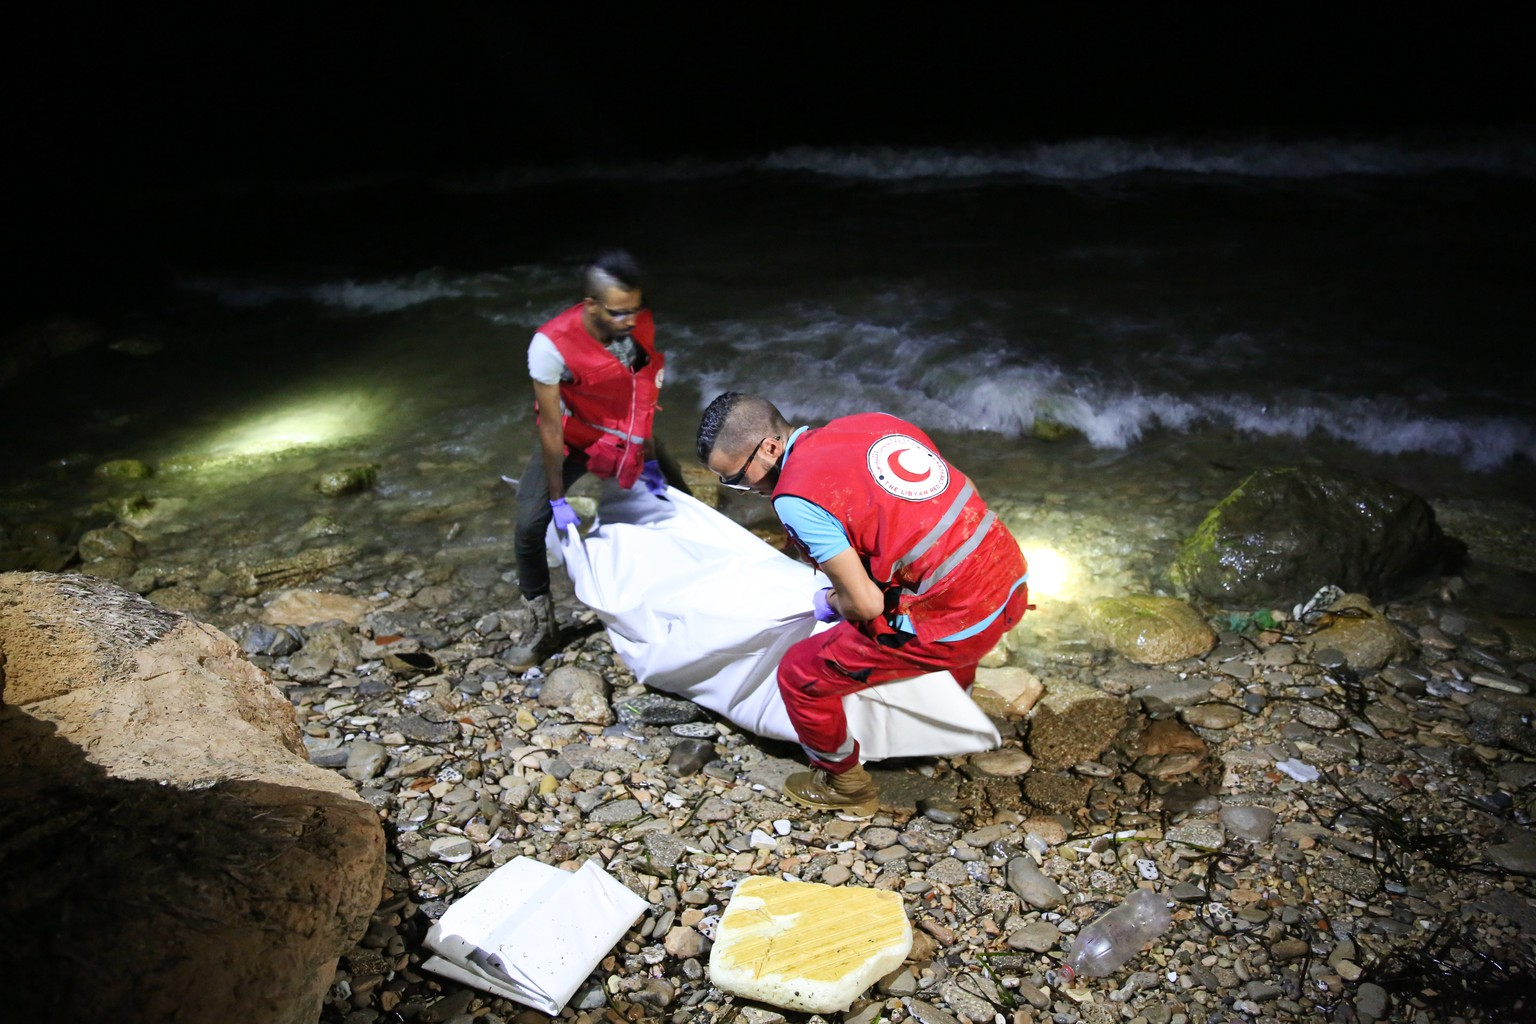 epa06860342 Libyan Red Crescent (LRC) rescue workers carry a body of a drowned migrant on a beach after being washed up, Tajoura, 14 kilometers east of Tripoli, Libya, 02 July 2018 (issued 03 July 2018). According to reports, Libyan rescuers found bodies of 17 drowned migrants over the past two days, after a migrant boat sank off the coast on 29 June with some 100 people missing in the incident.  EPA/STRINGER